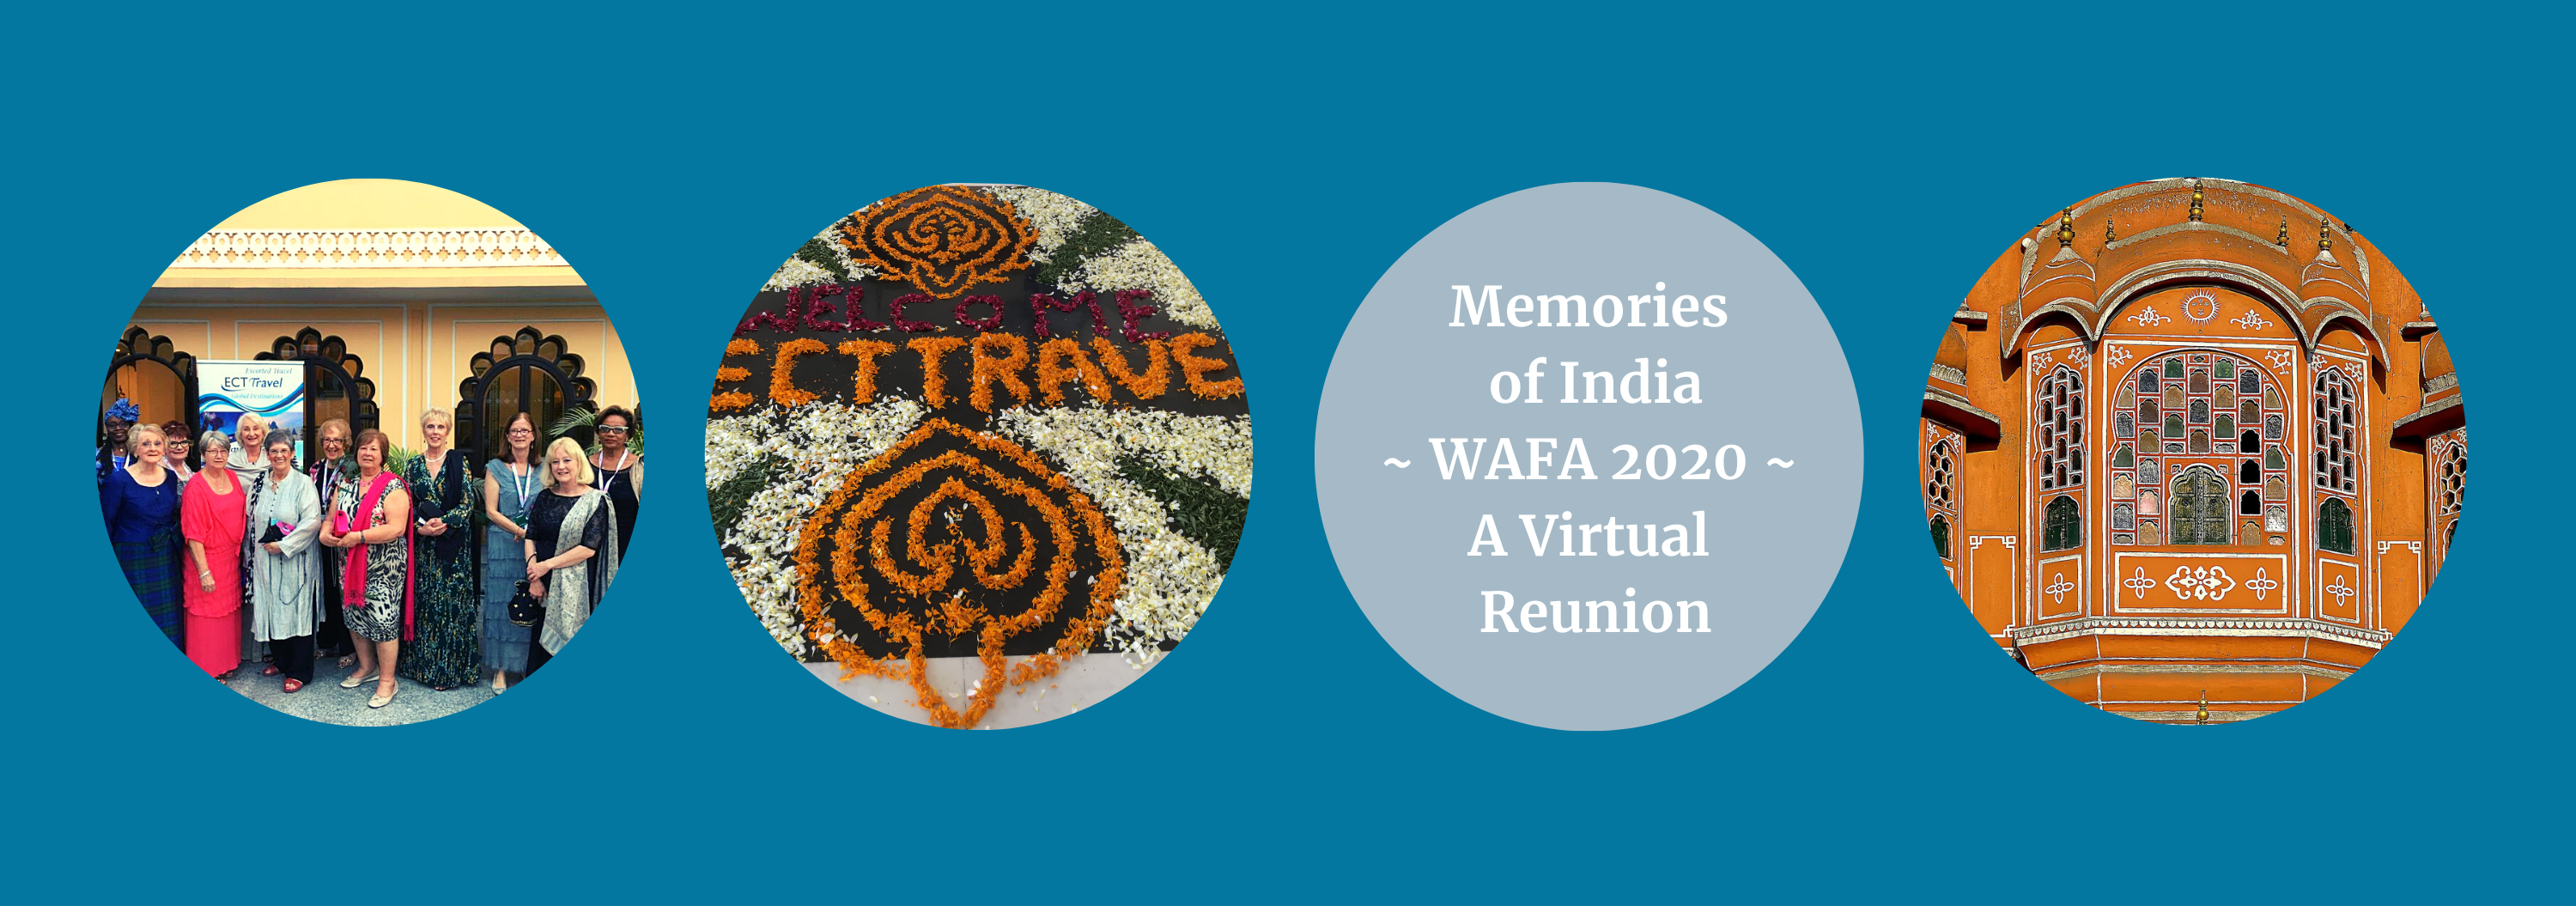 Virtual enounter - WAFA Jaipur 2020 with ECT Travel